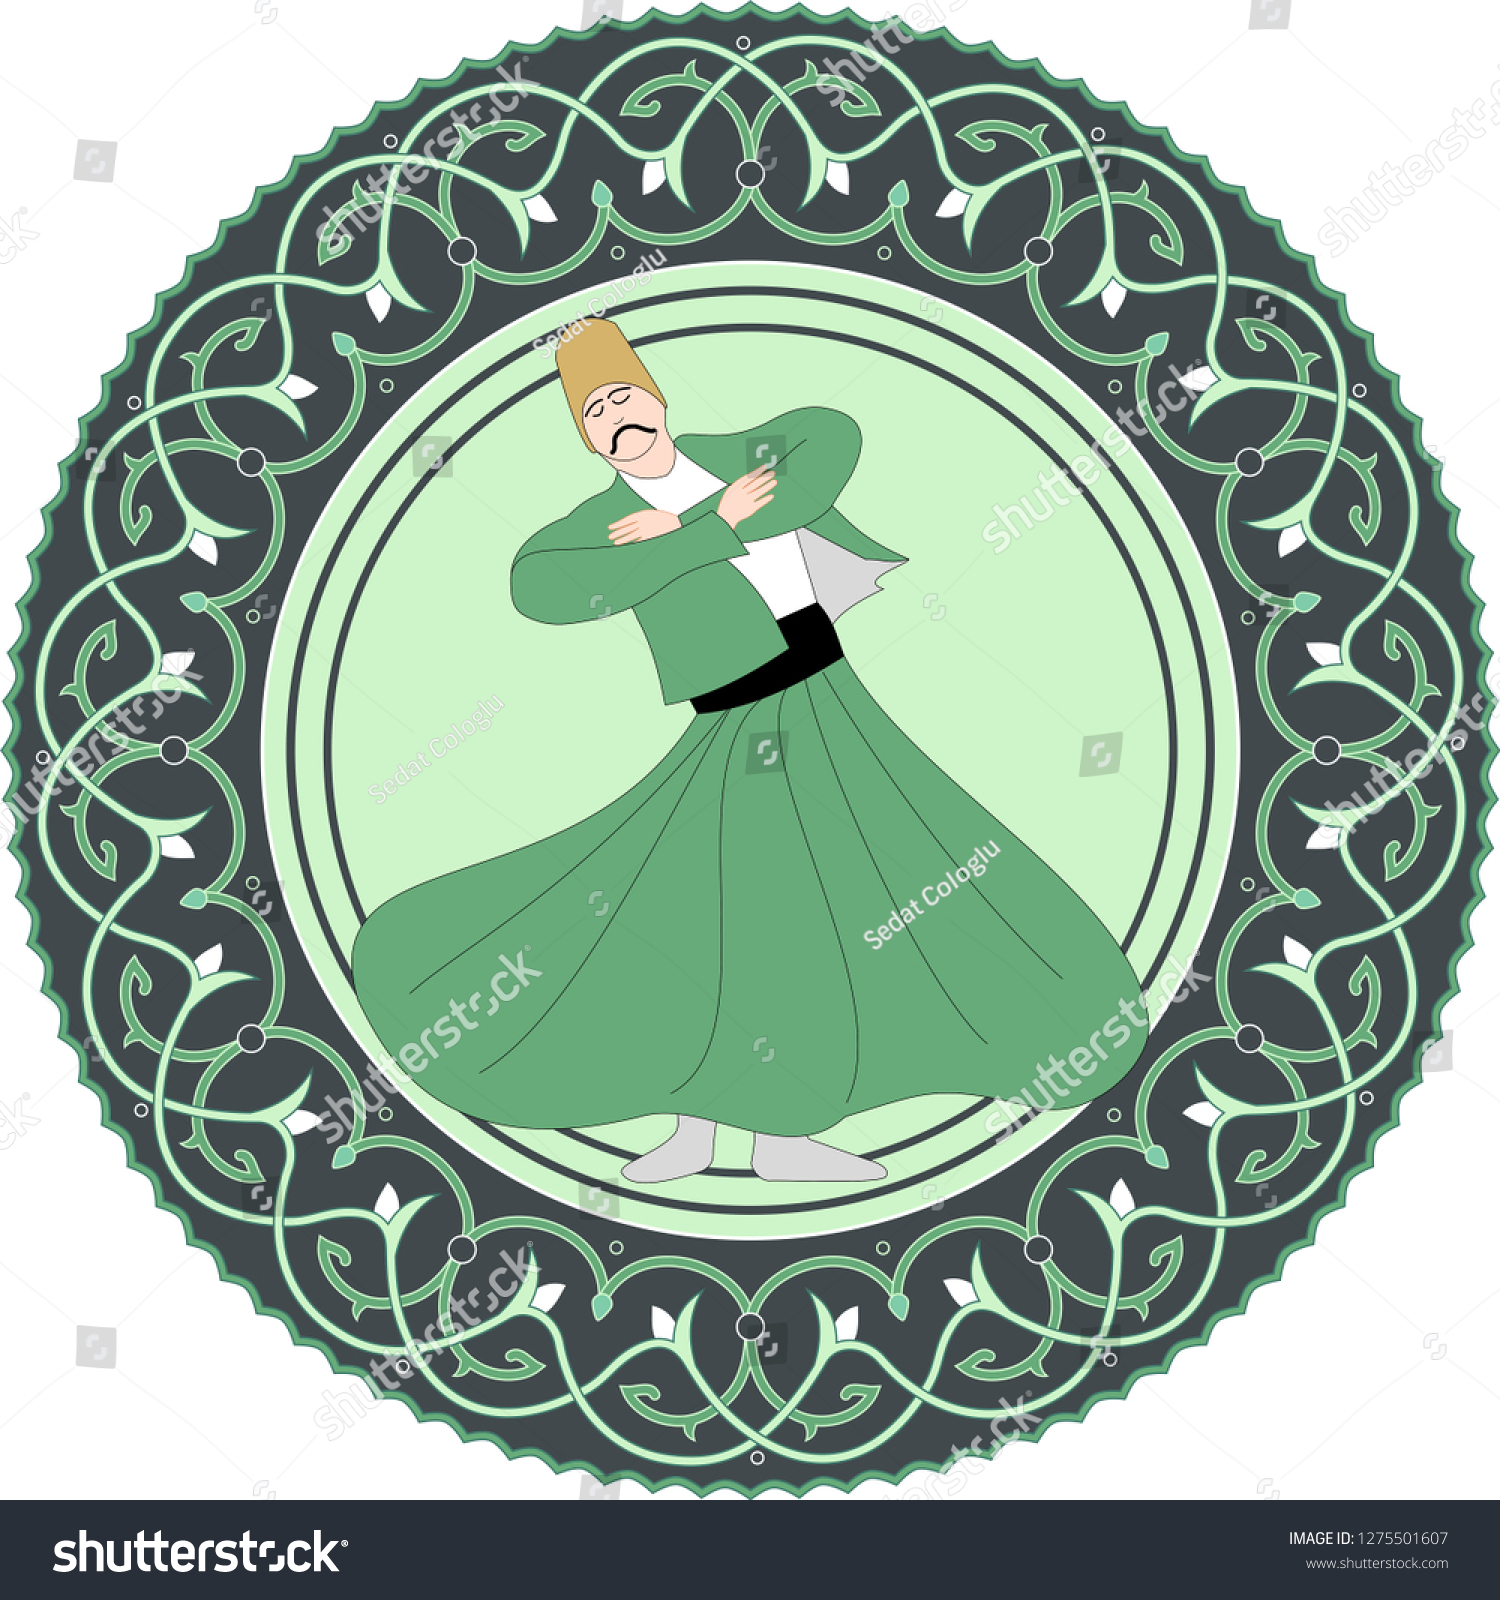 stock-vector-whirling-dervish-sufi-eps-format-vector-drawing-symbolic-study-of-mevlevi-mystical-dance-it-can-1275501607